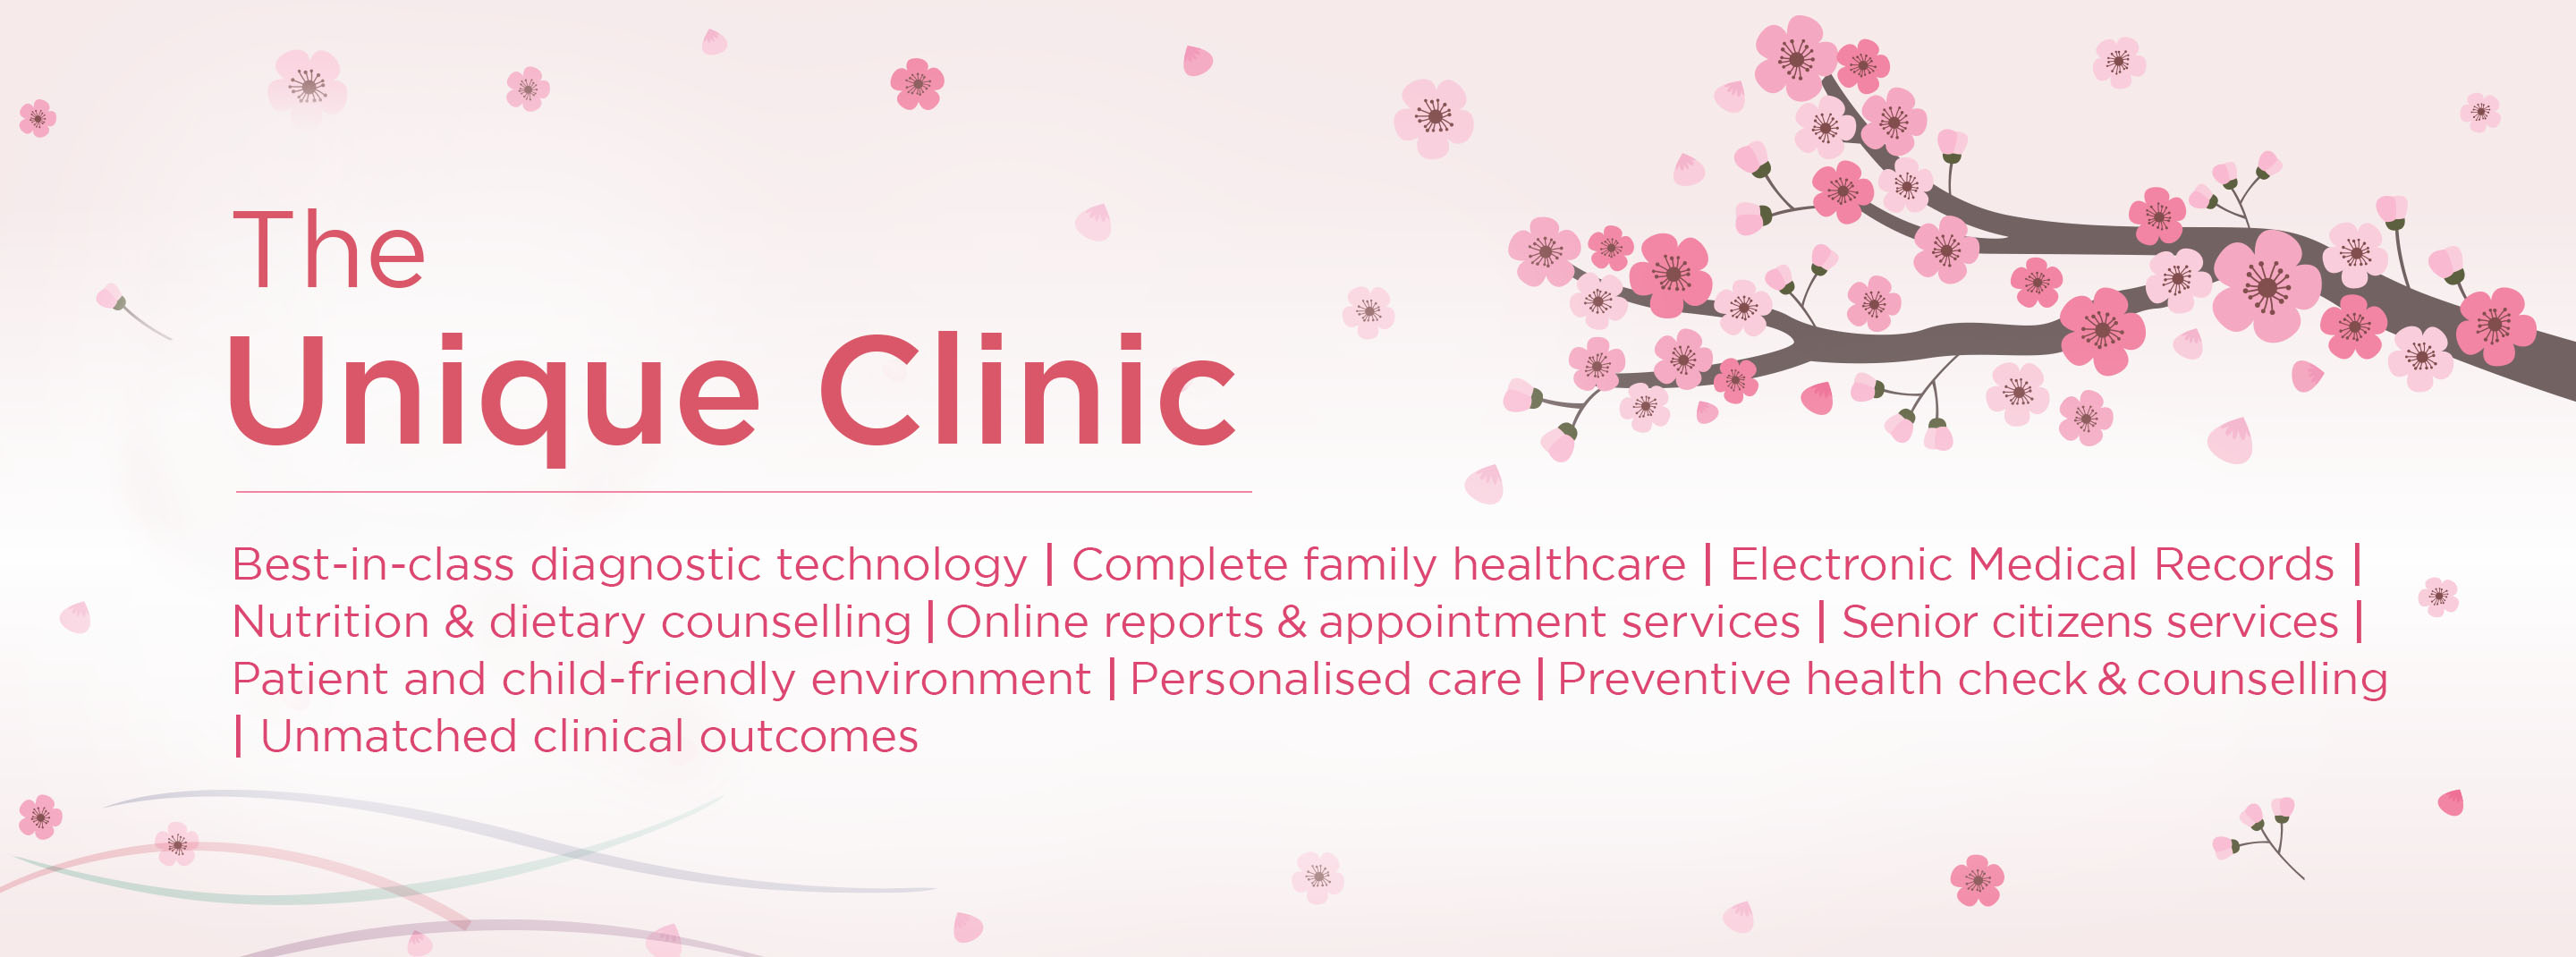 mutispeciality clinic in sarjapur road bangalore